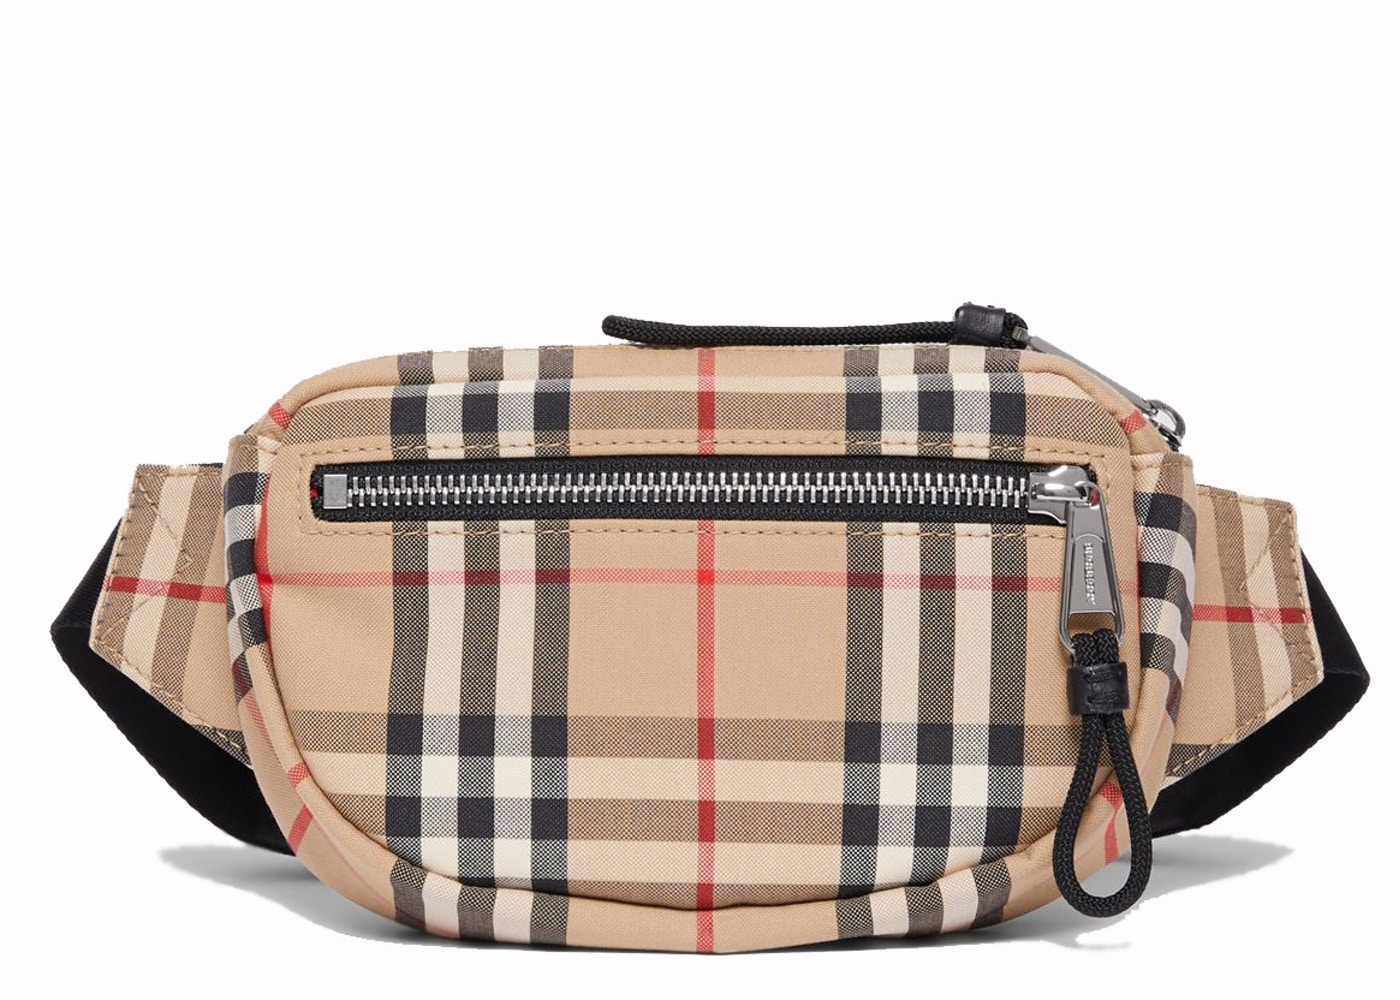 Burberry Cannon Bag Vintage Check